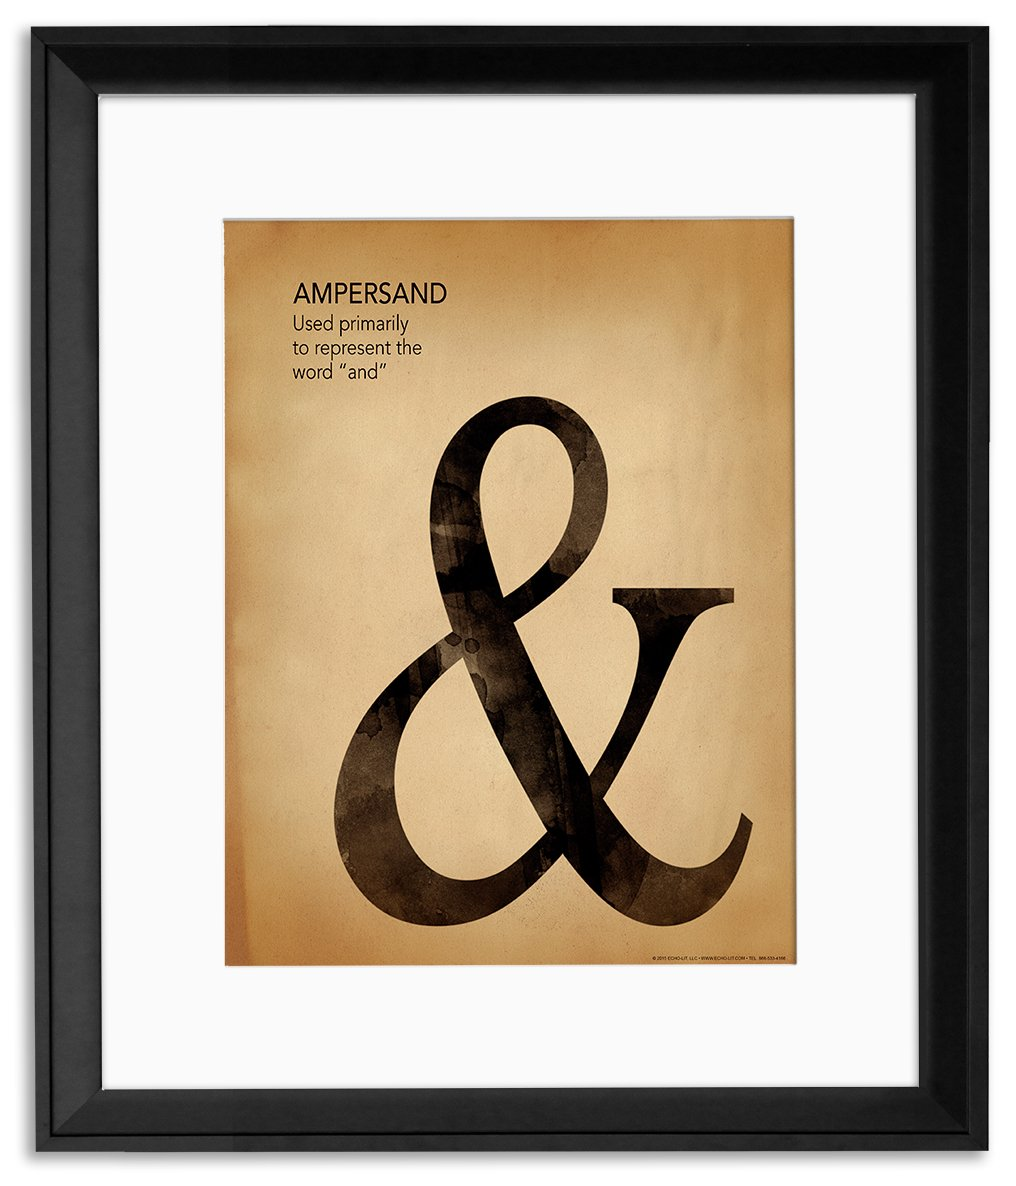 Popular Punctuation, Writing and Grammar Framed Poster Set for Home, Office, Classroom, or Library.